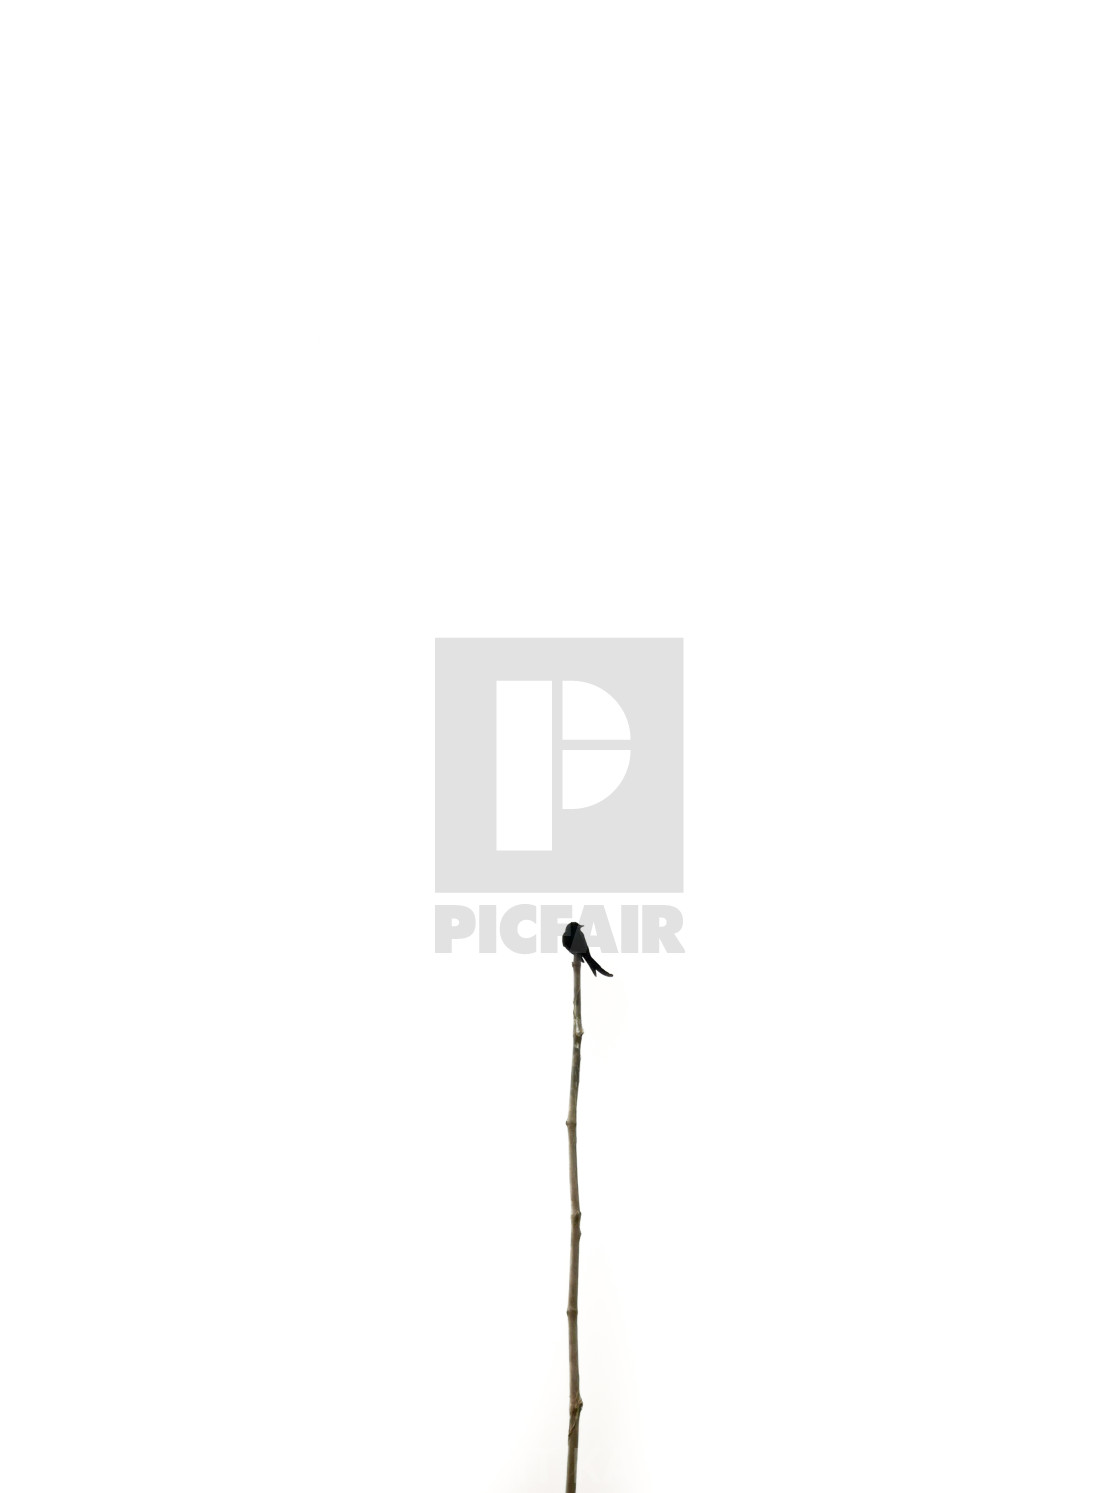 """lonely bird sitting on the pole"" stock image"